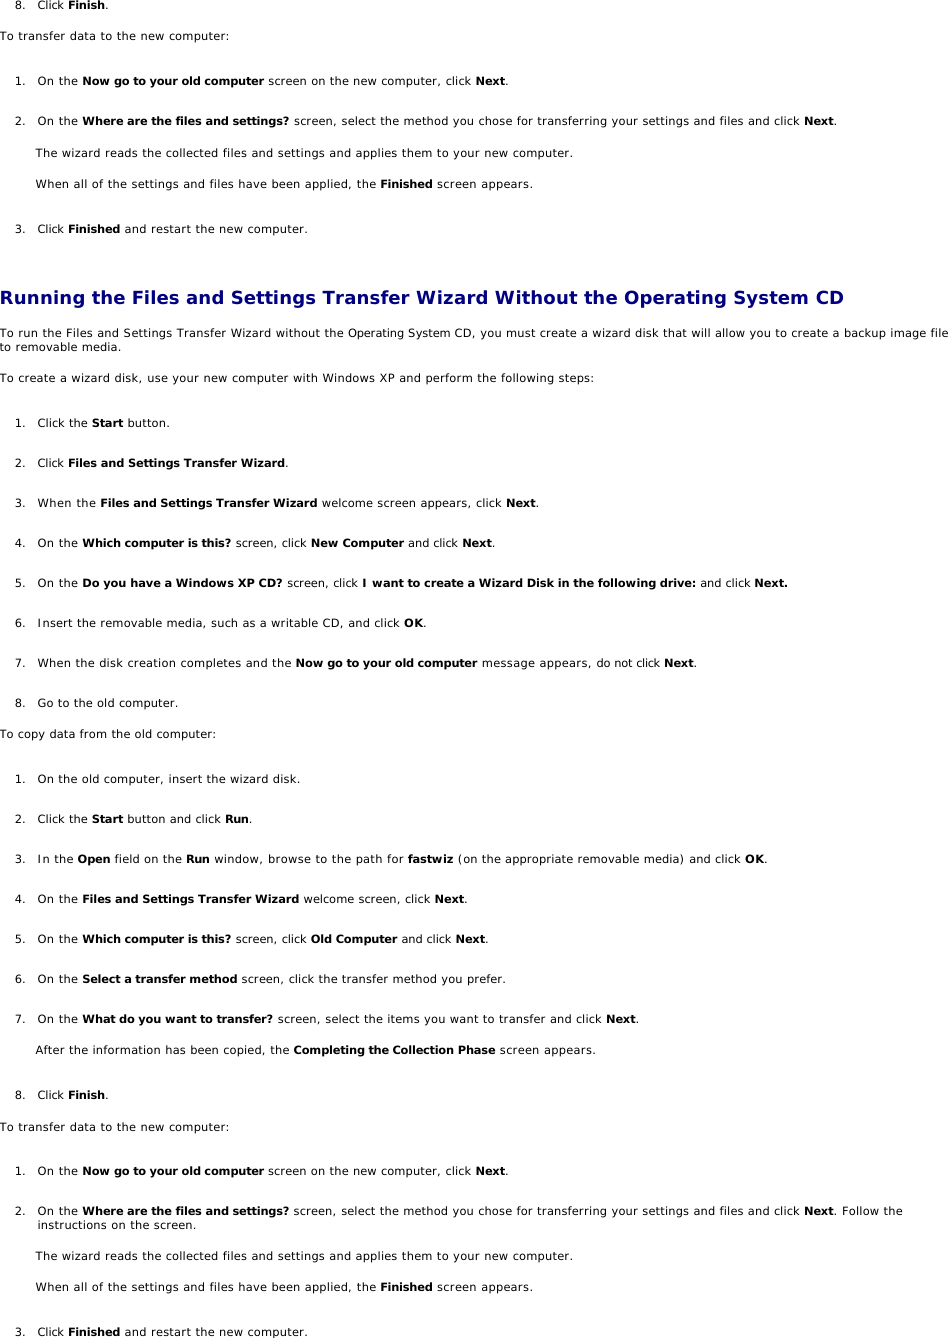 Dell Optiplex 745 Users Manual Systems User's Guide